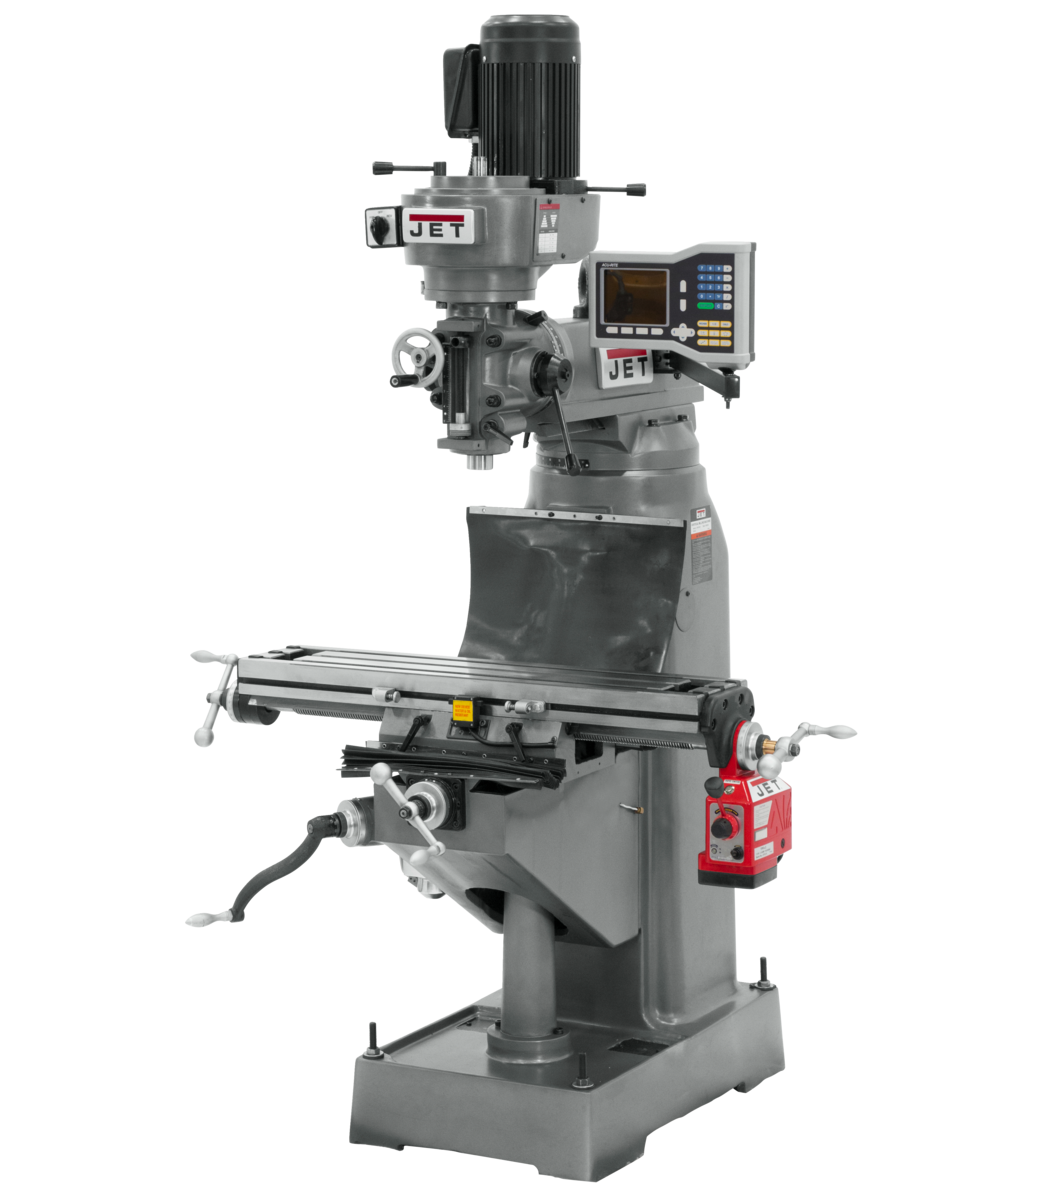 JVM-836-1 Mill With 3-Axis ACU-RITE VUE DRO (Quill) With X-Axis Powerfeeds